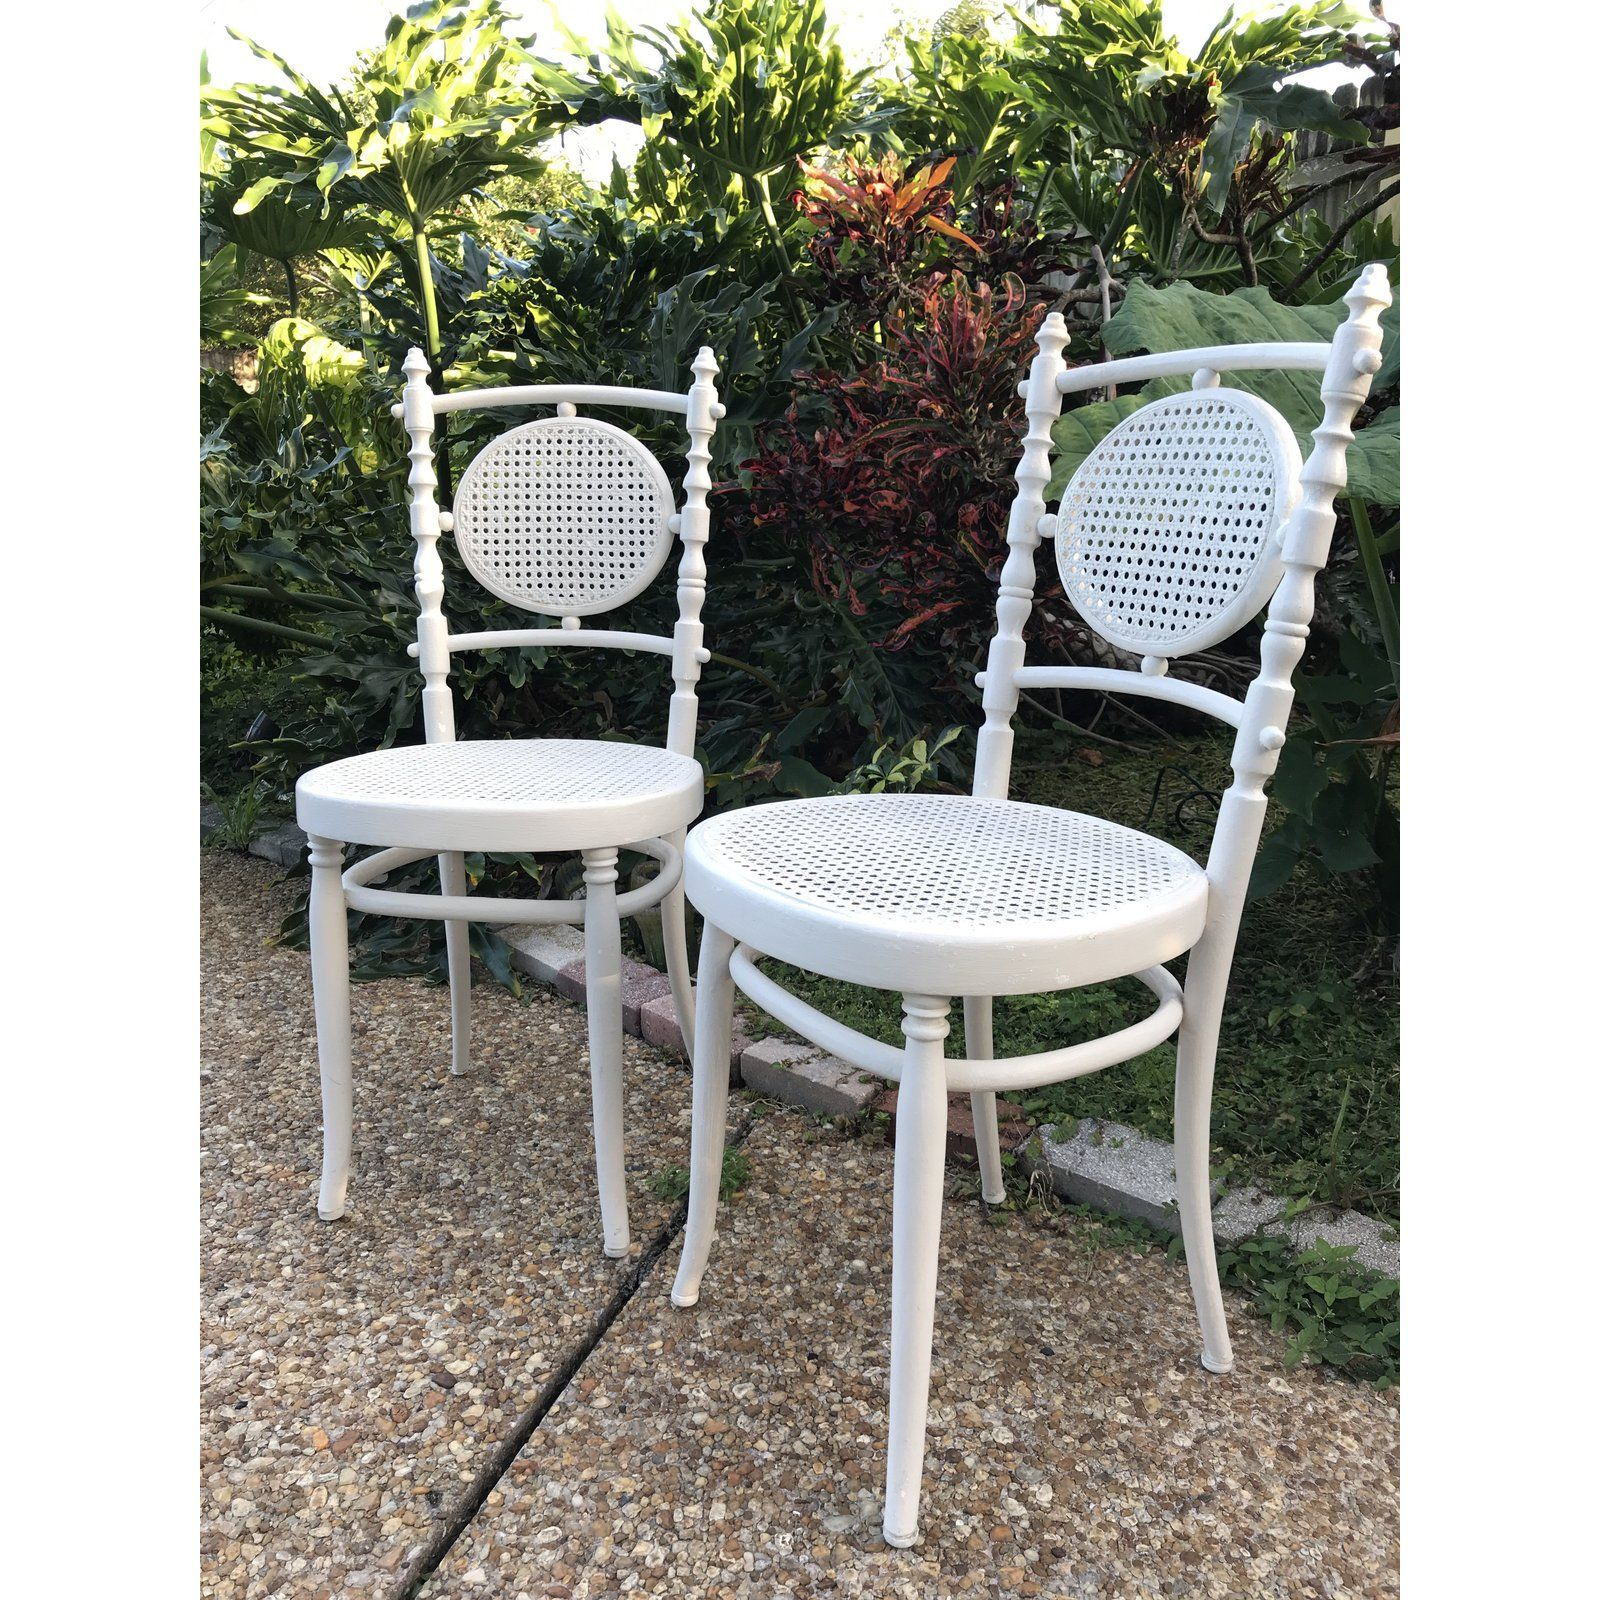 Very Rare And True Antique Bentwood Bistro Chairs Produced In 1913 S In Europe Austria And Outdoor Patio Furniture Sets French Style Homes European Home Decor